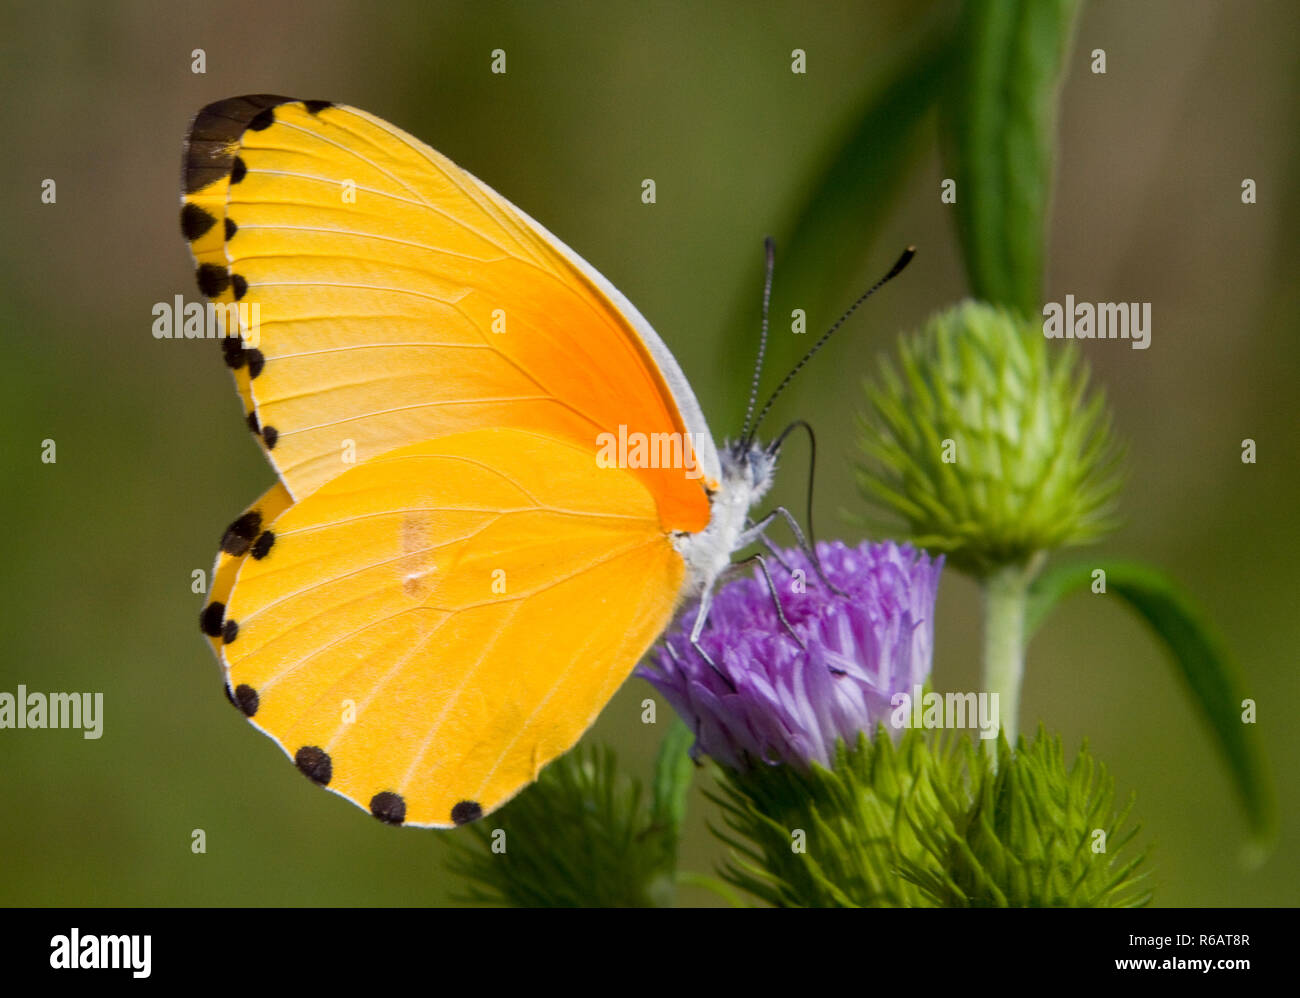 A common slow flying butterflyof the 'White' family, the Common Dot Border is readily attracted to certain flowering plants during the rainy season. - Stock Image